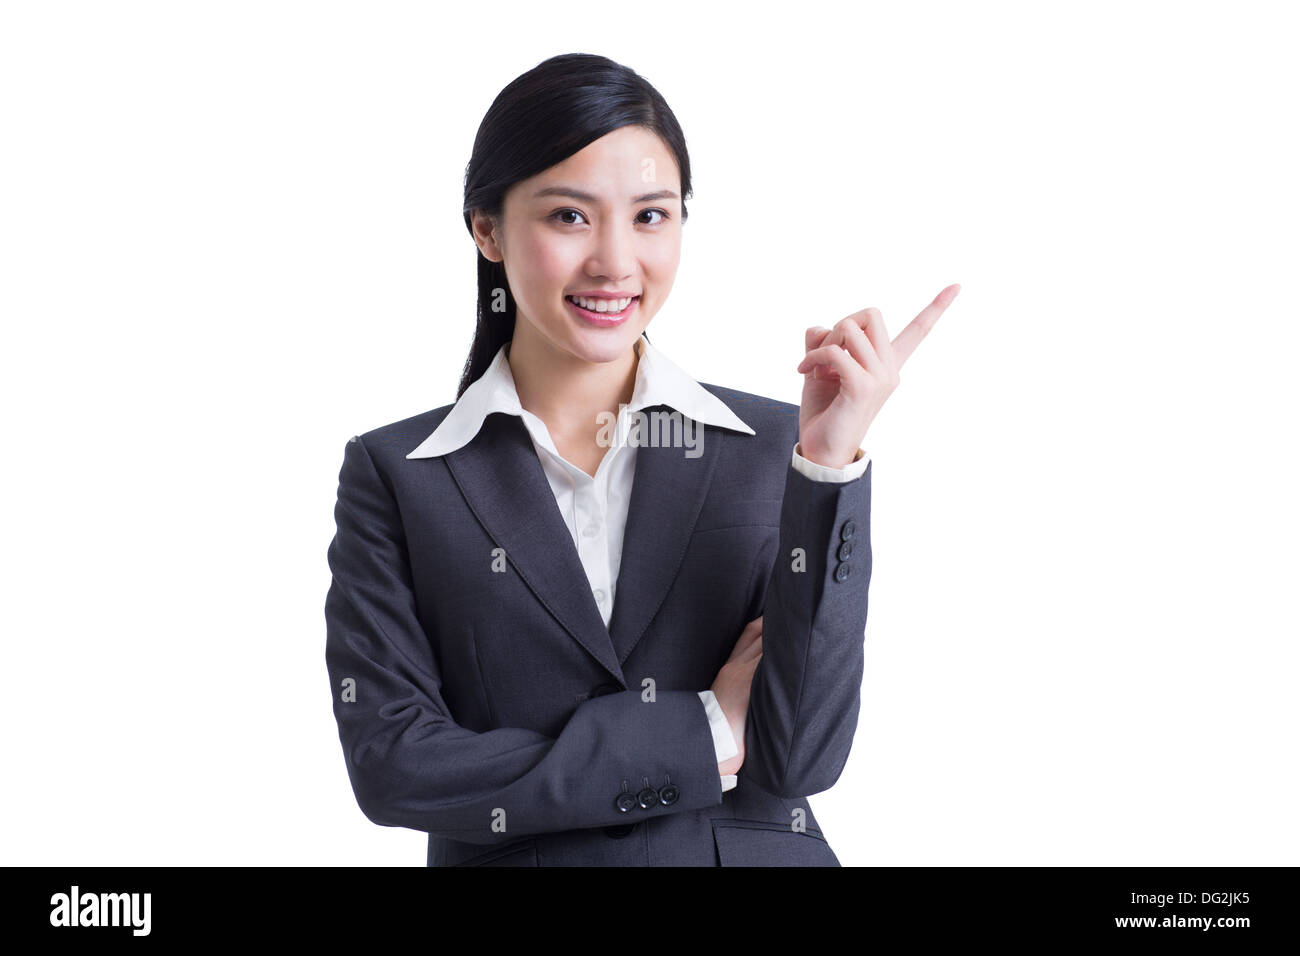 Cheerful businesswoman pointing - Stock Image